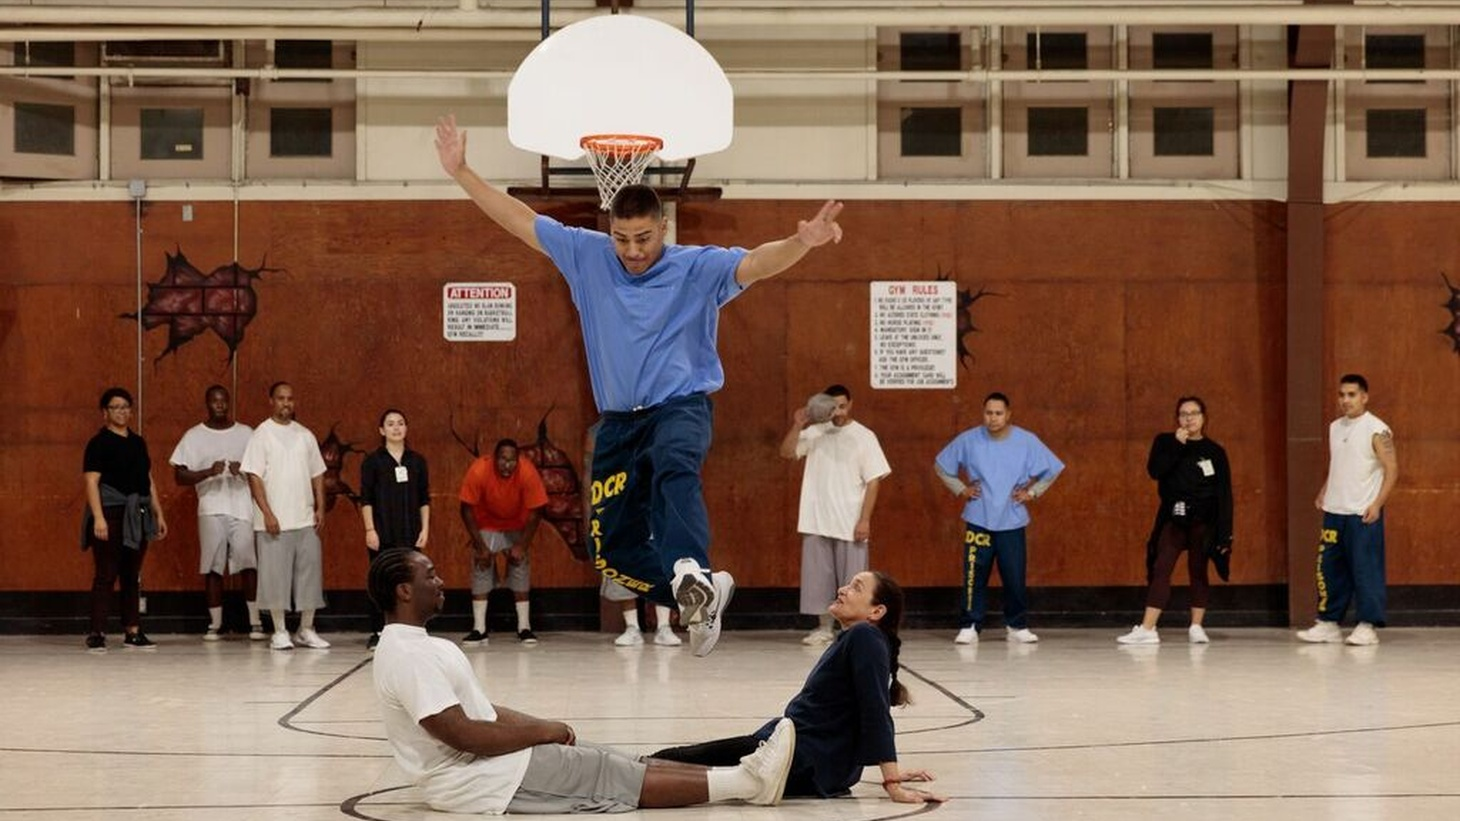 A dance rehearsal at the Correctional Rehabilitation Center in Norco, CA.